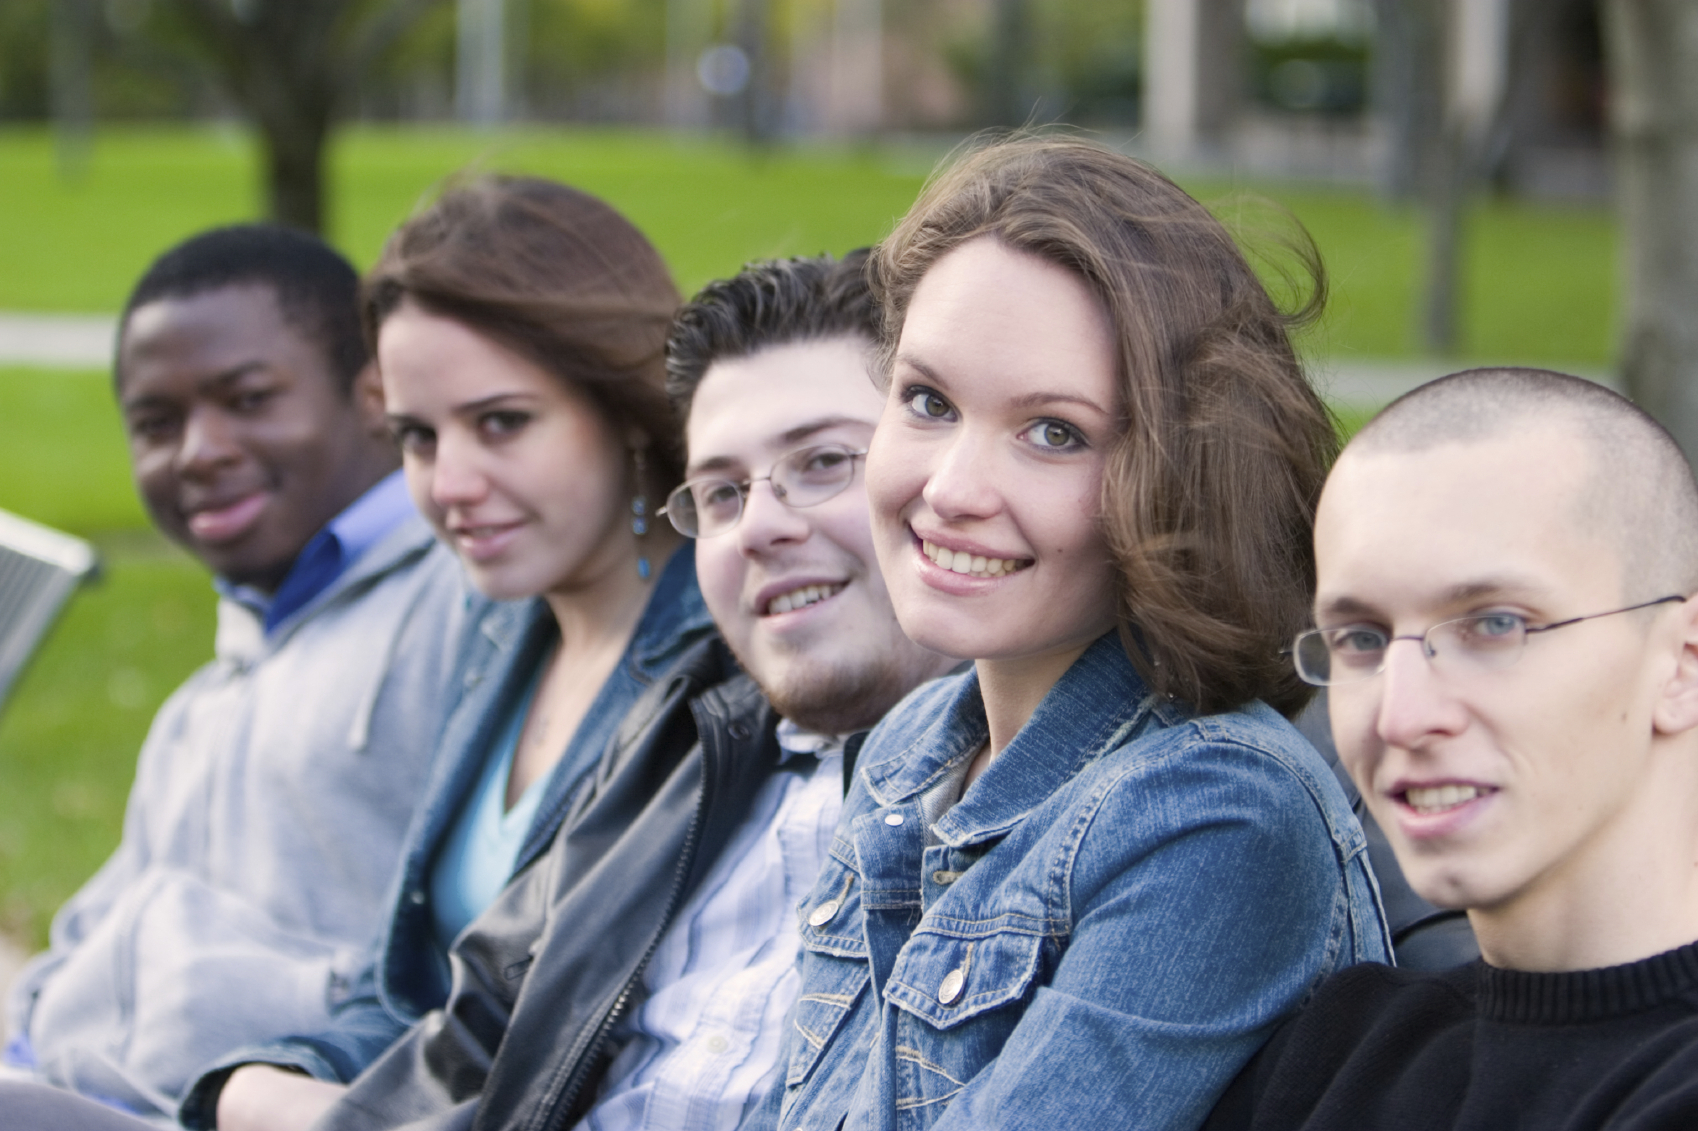 homeschooling academics socialization and college admissions prospects As their numbers continue to surge, homeschool students are catching the eyes of college admissions advisors and recruiters, who are viewing today's college-bound homeschoolers with growing attention and newfound respect.